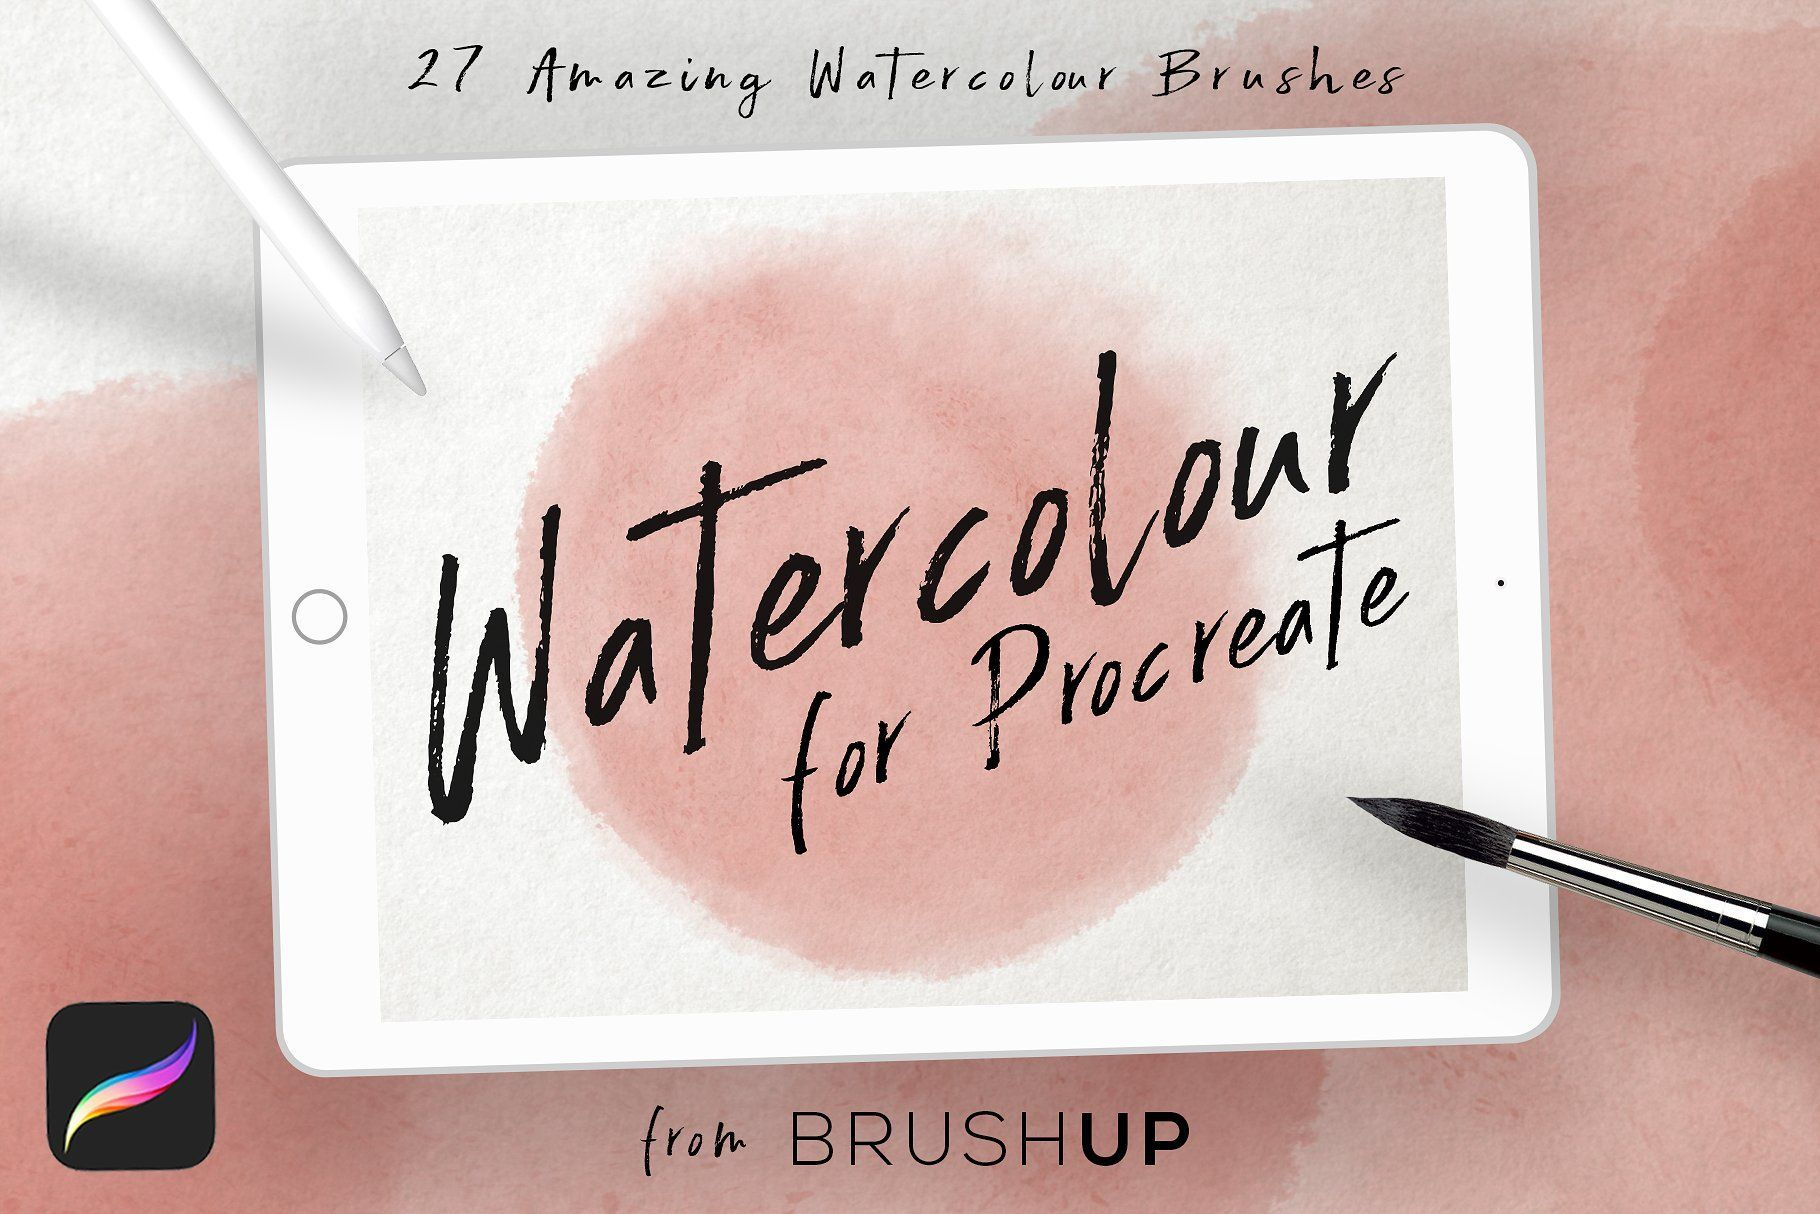 Watercolor Brushes for Procreate  Contains 27  stunning